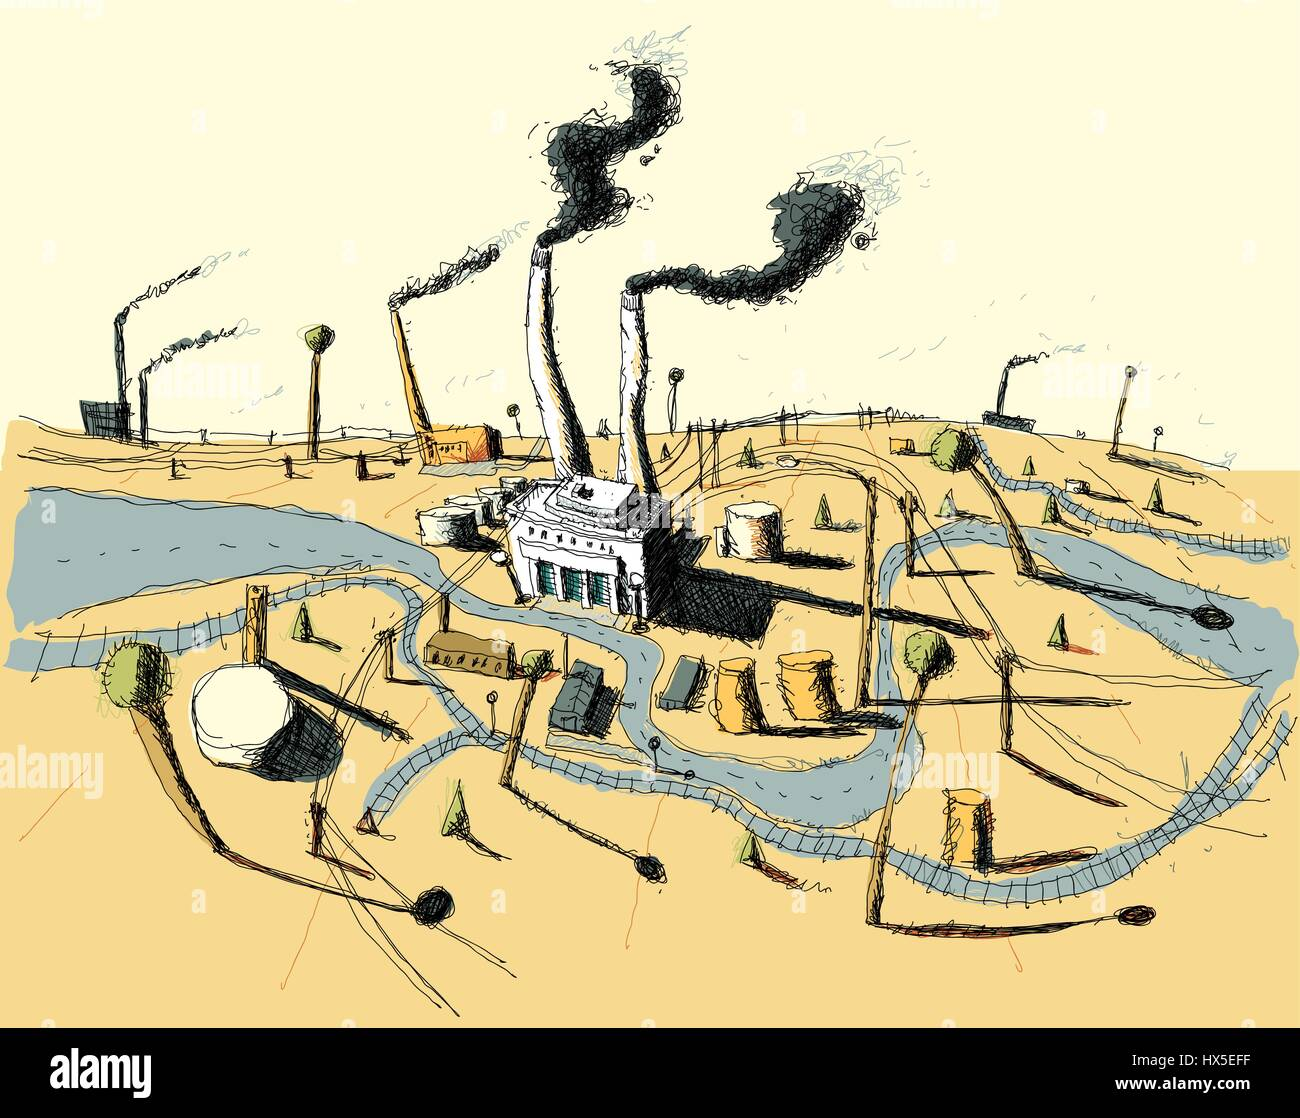 Illustration of an urban industrial zone with factories and smokestacks. - Stock Vector